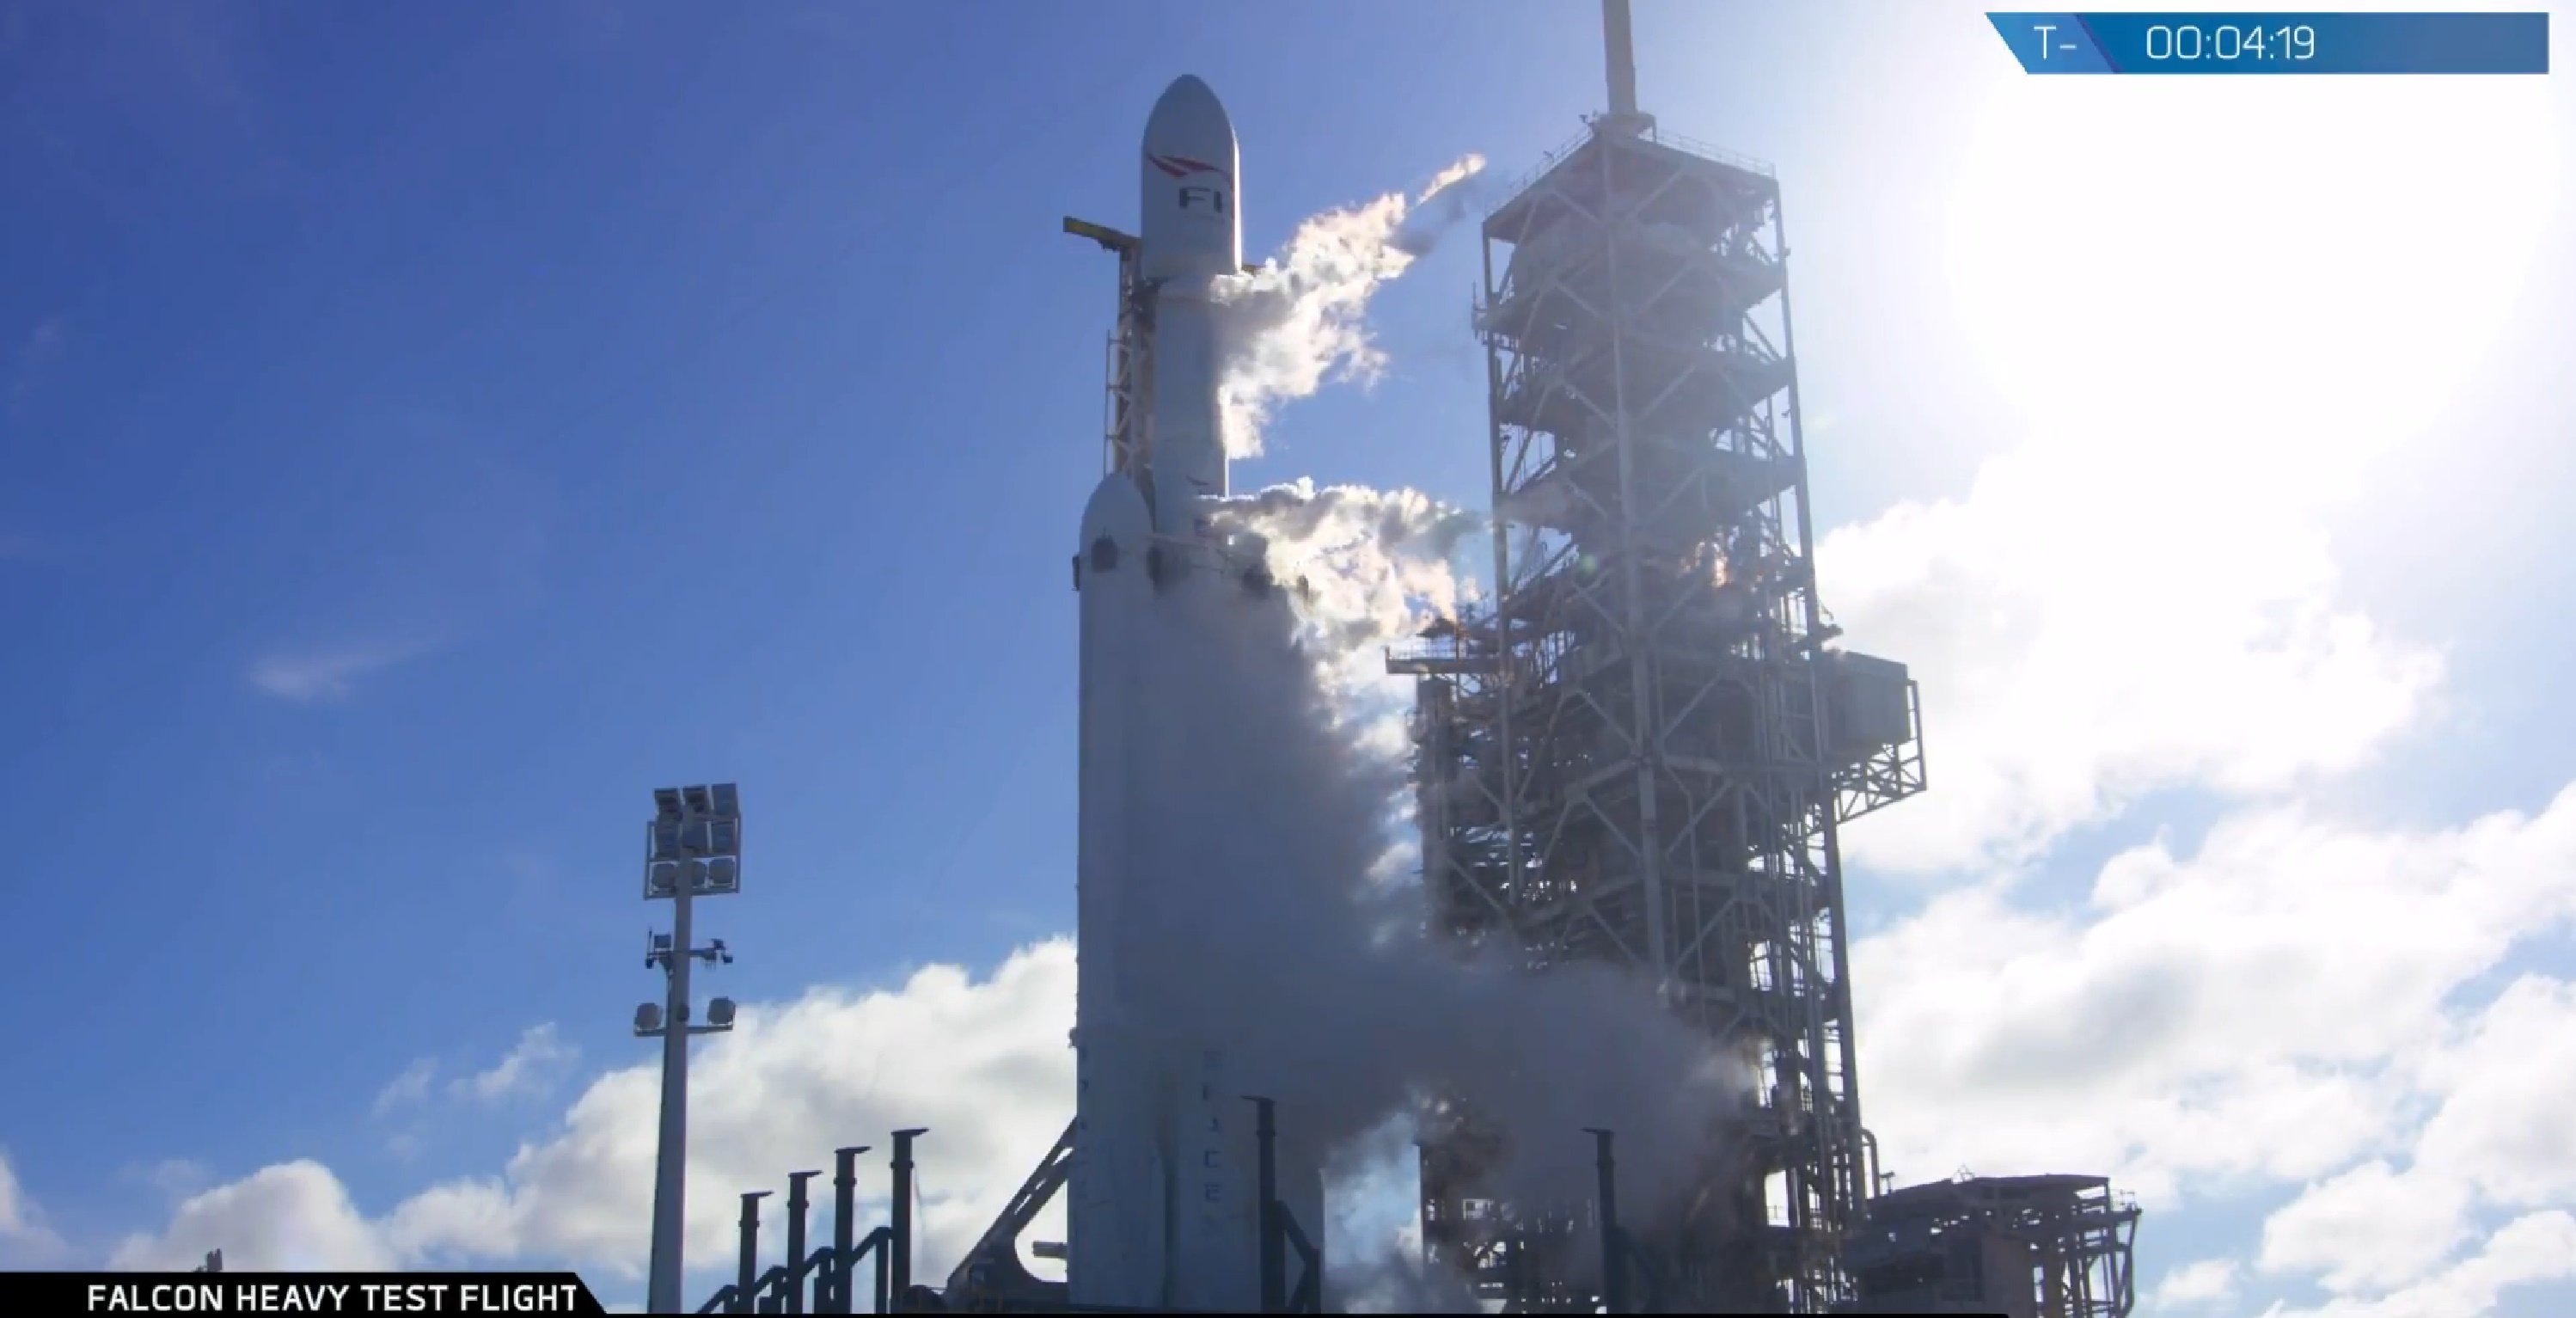 FH on pad (SpaceX)